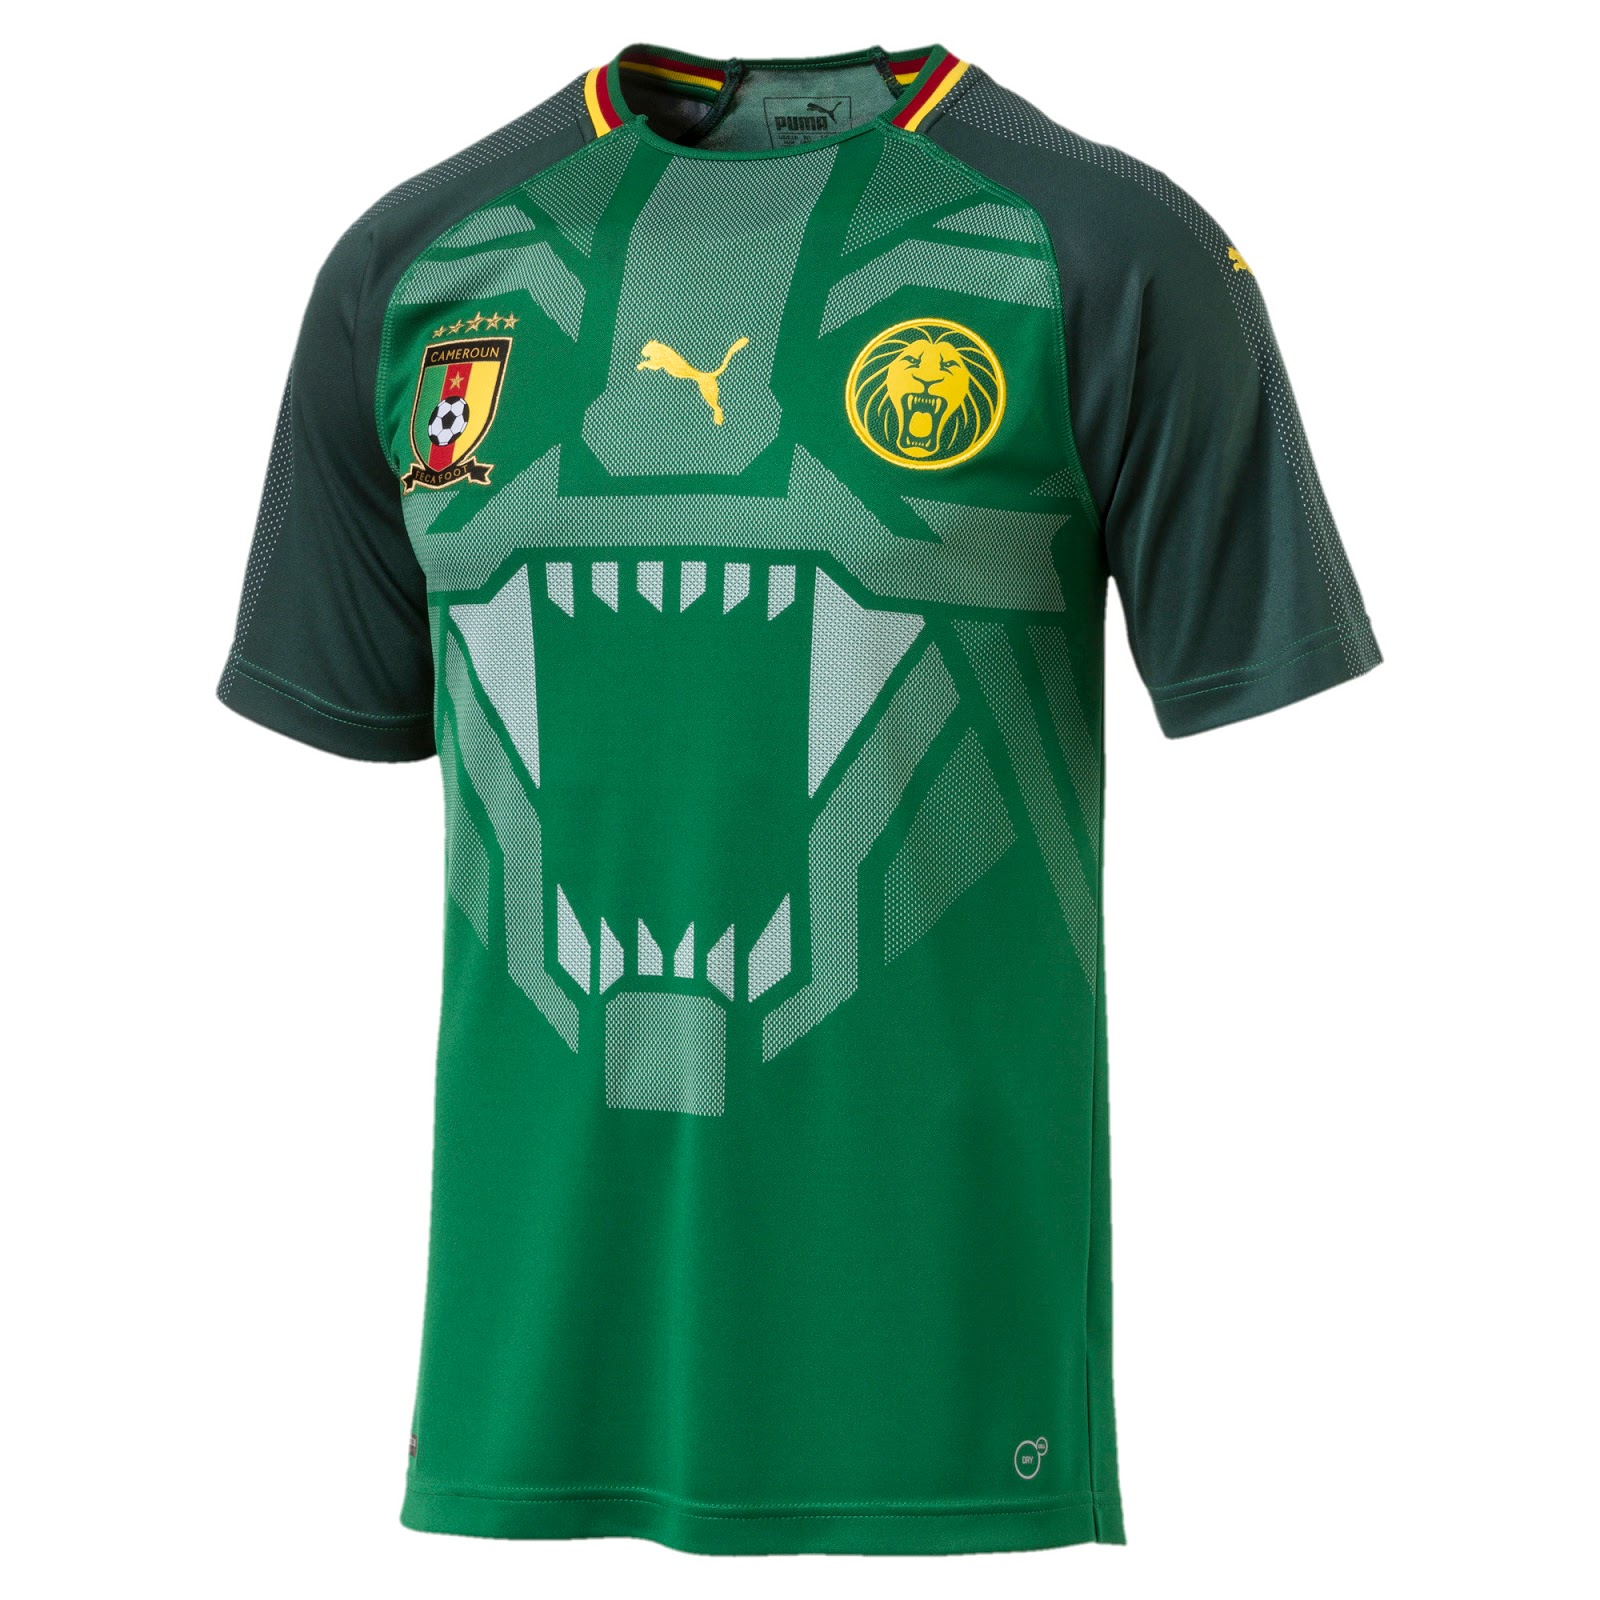 c4f78d44456 No More Puma After More Than 20 Years? Cameroon To Get New Kit Maker ...